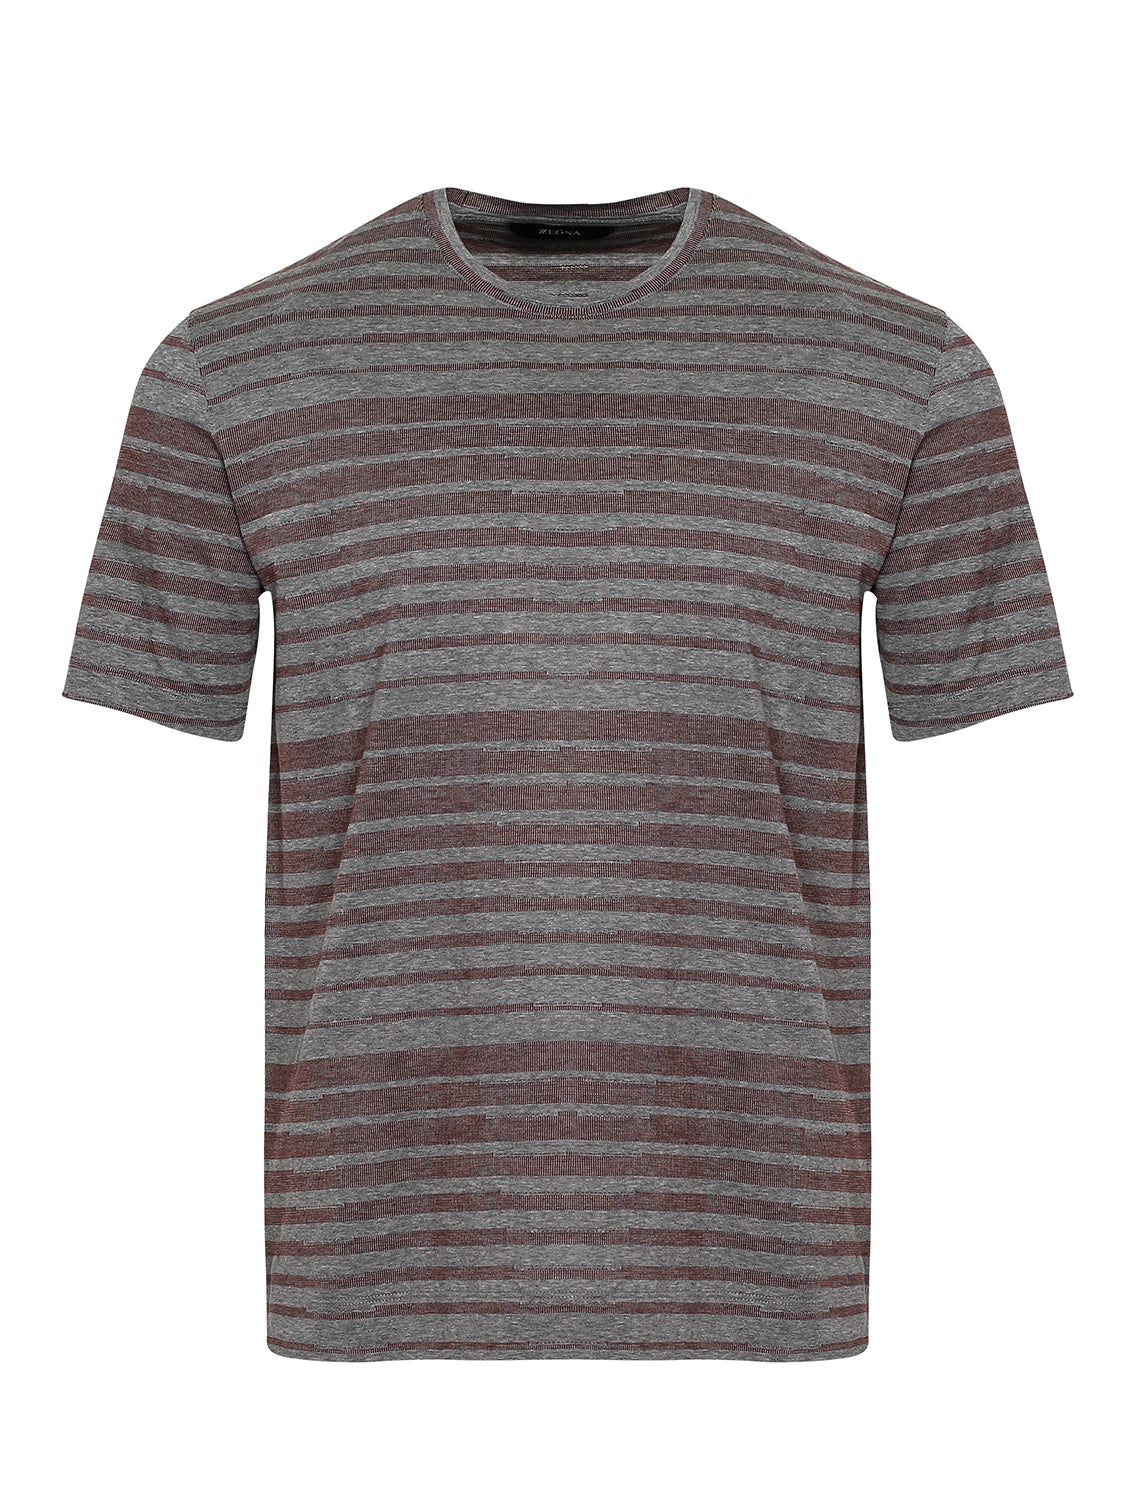 Z Zegna Mercerised Striped T-Shirt (Grey / Maroon) - Union 22